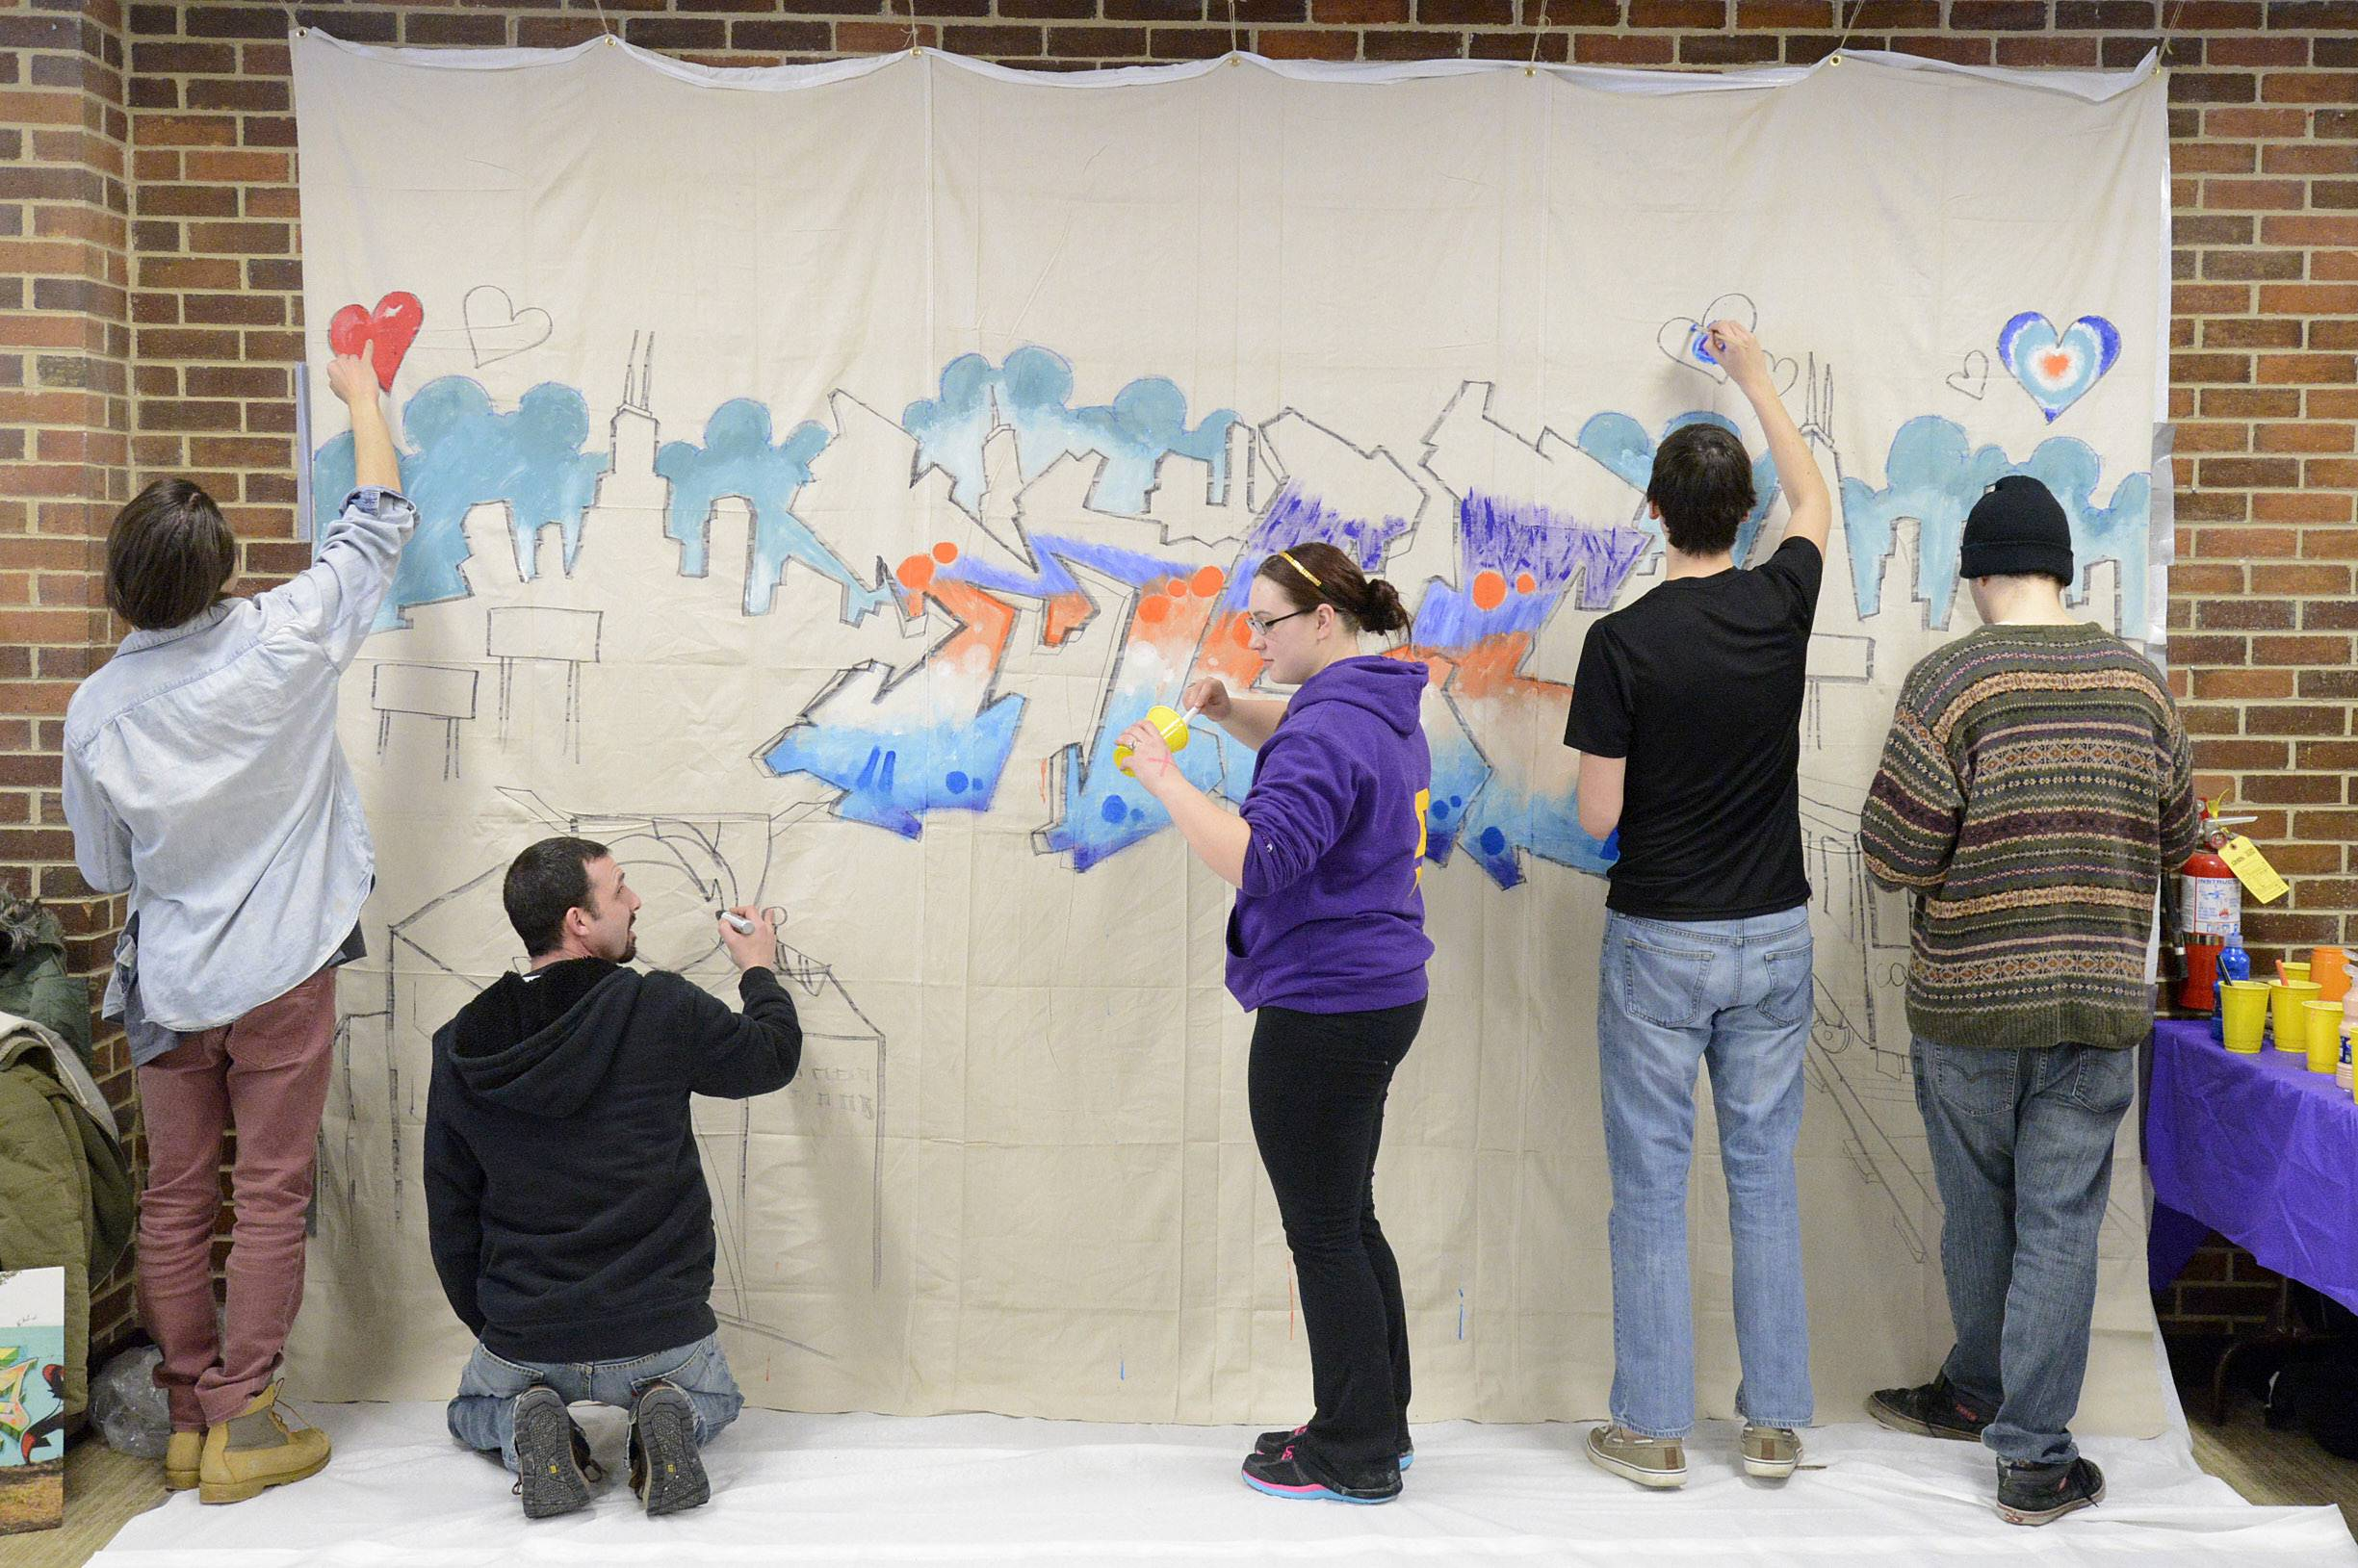 Students join artist Bill Weyna, second from left, fill in the graffiti-inspired mural Thursday at McHenry County College. Helping out, from left, are Ivan Burik of Crystal Lake, Weyna, Katie Barucca of McHenry, Erick Marchessault of Cary and Jake Kvidera of McHenry. Students helped with the mural between classes and during their lunch break.